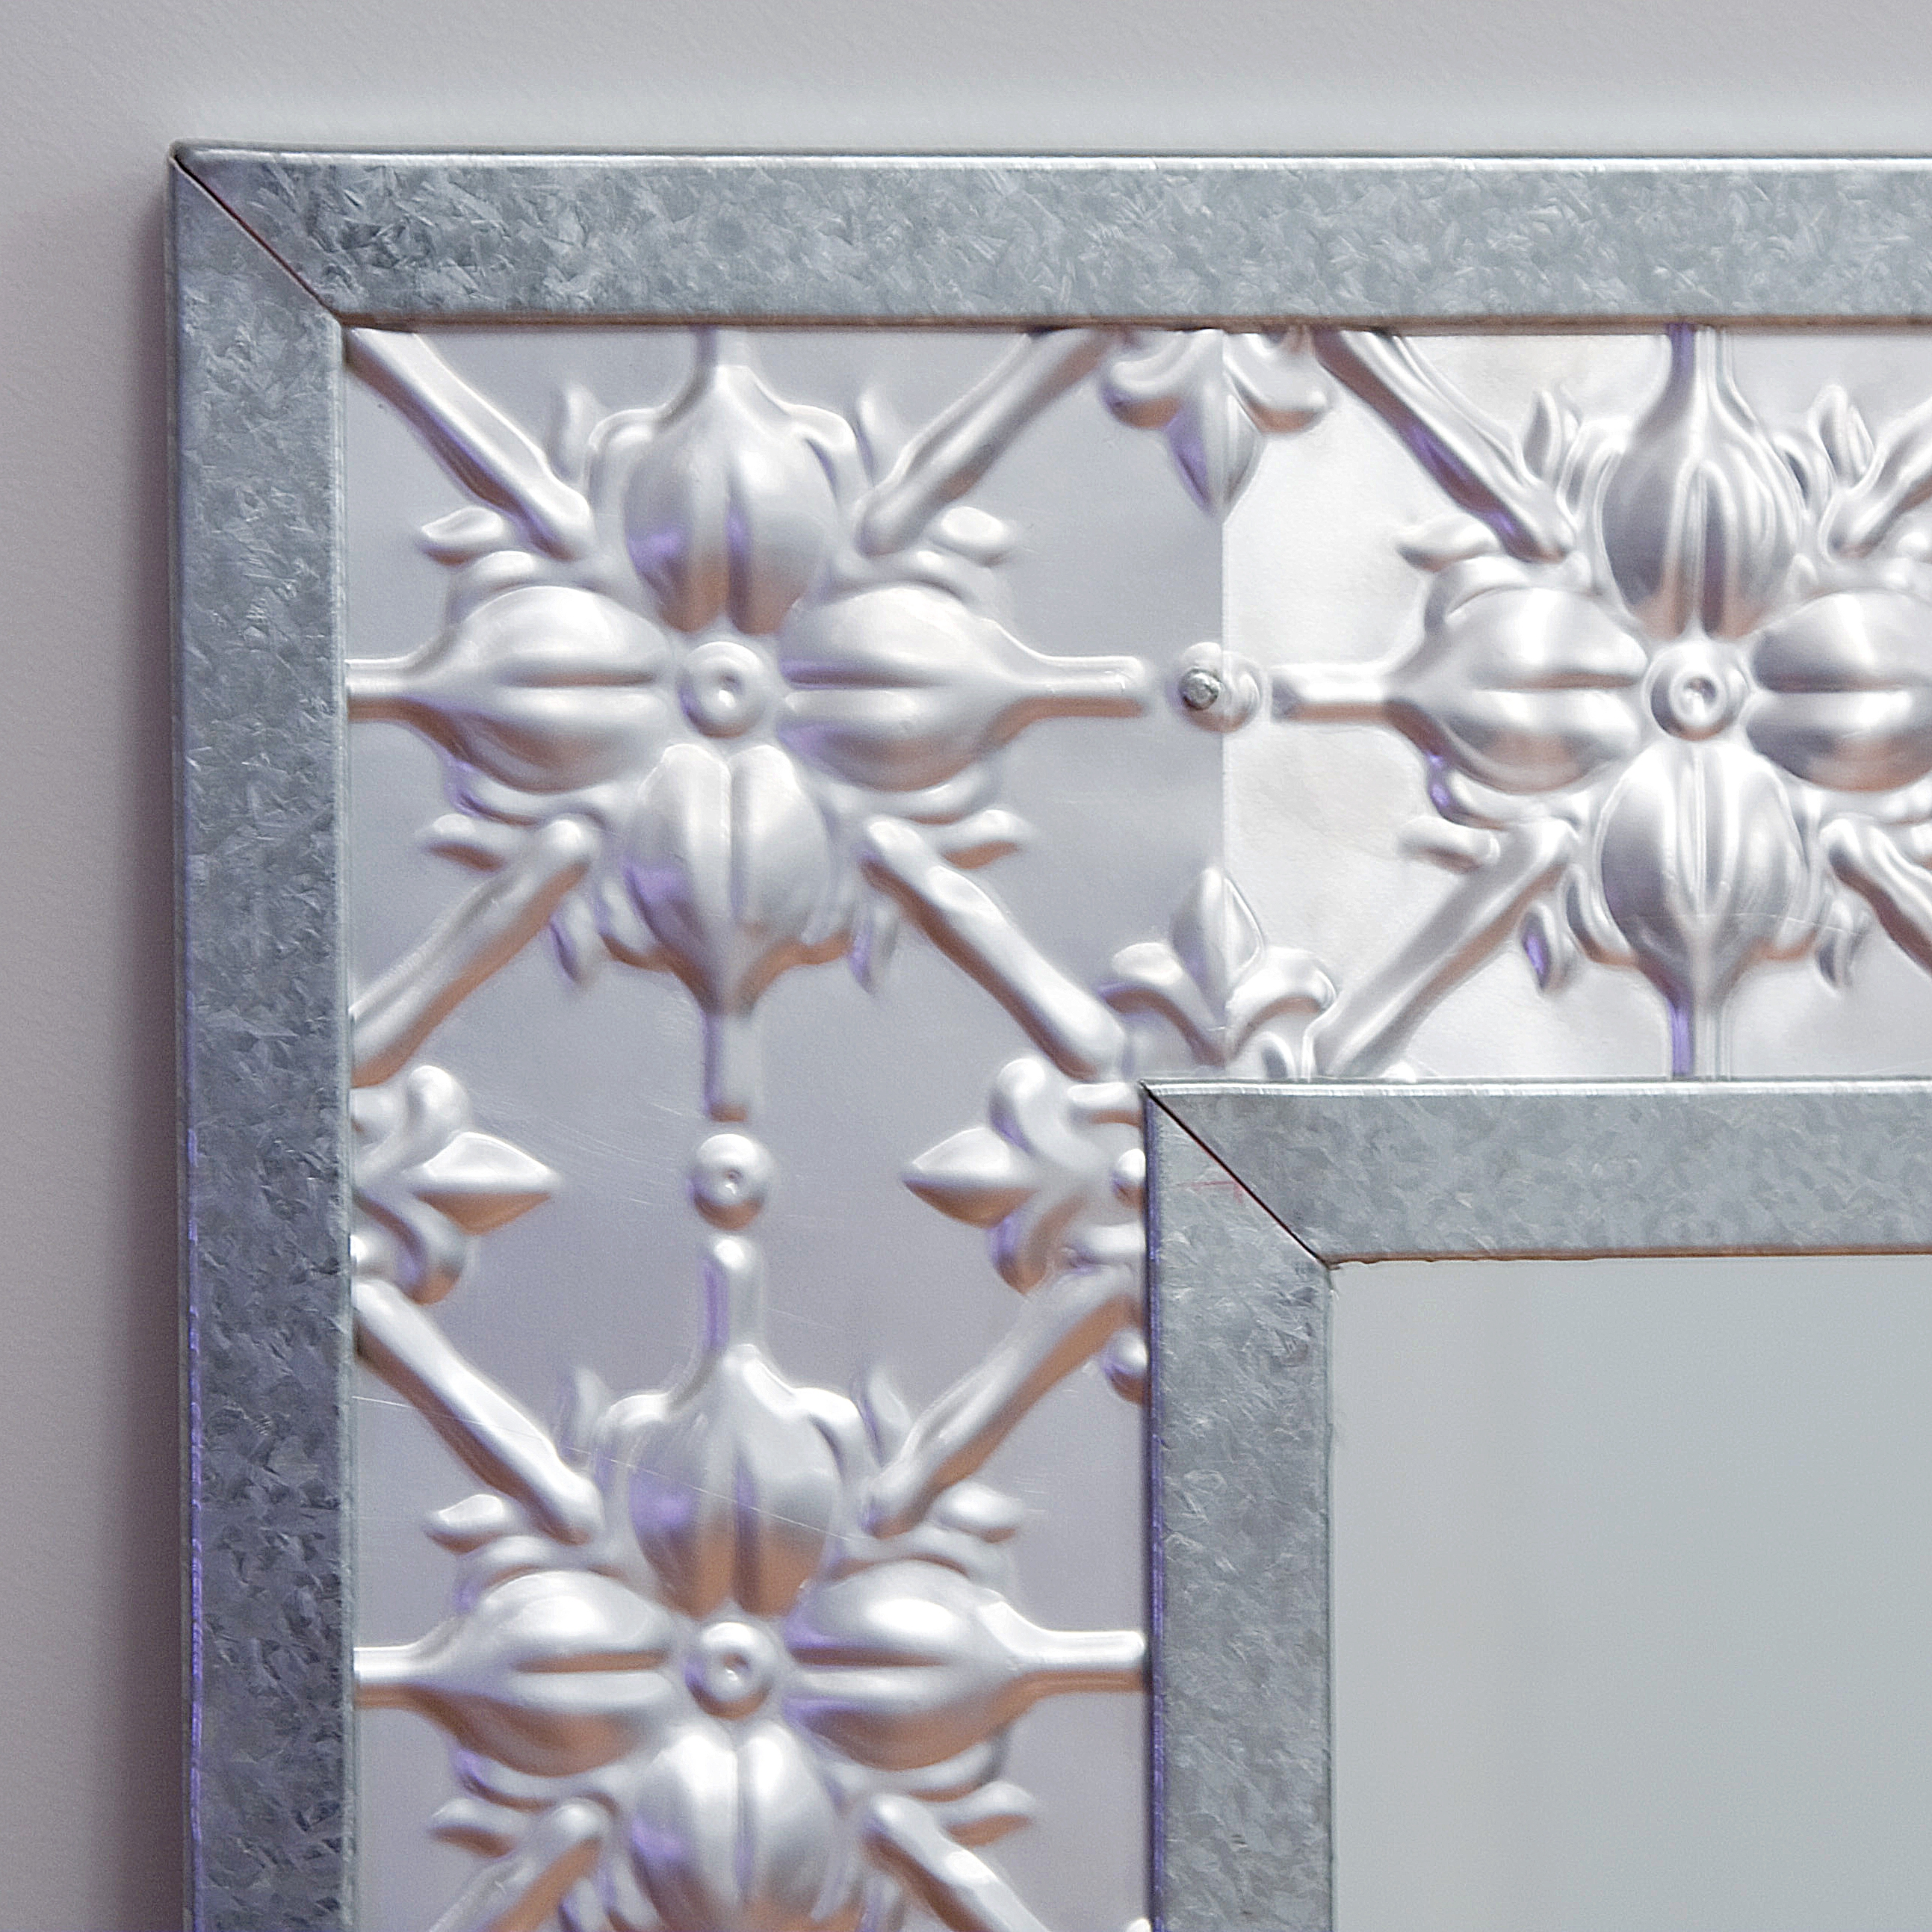 Pressed Tin Mirrors Within Pressed Tin Mirror (Image 11 of 15)